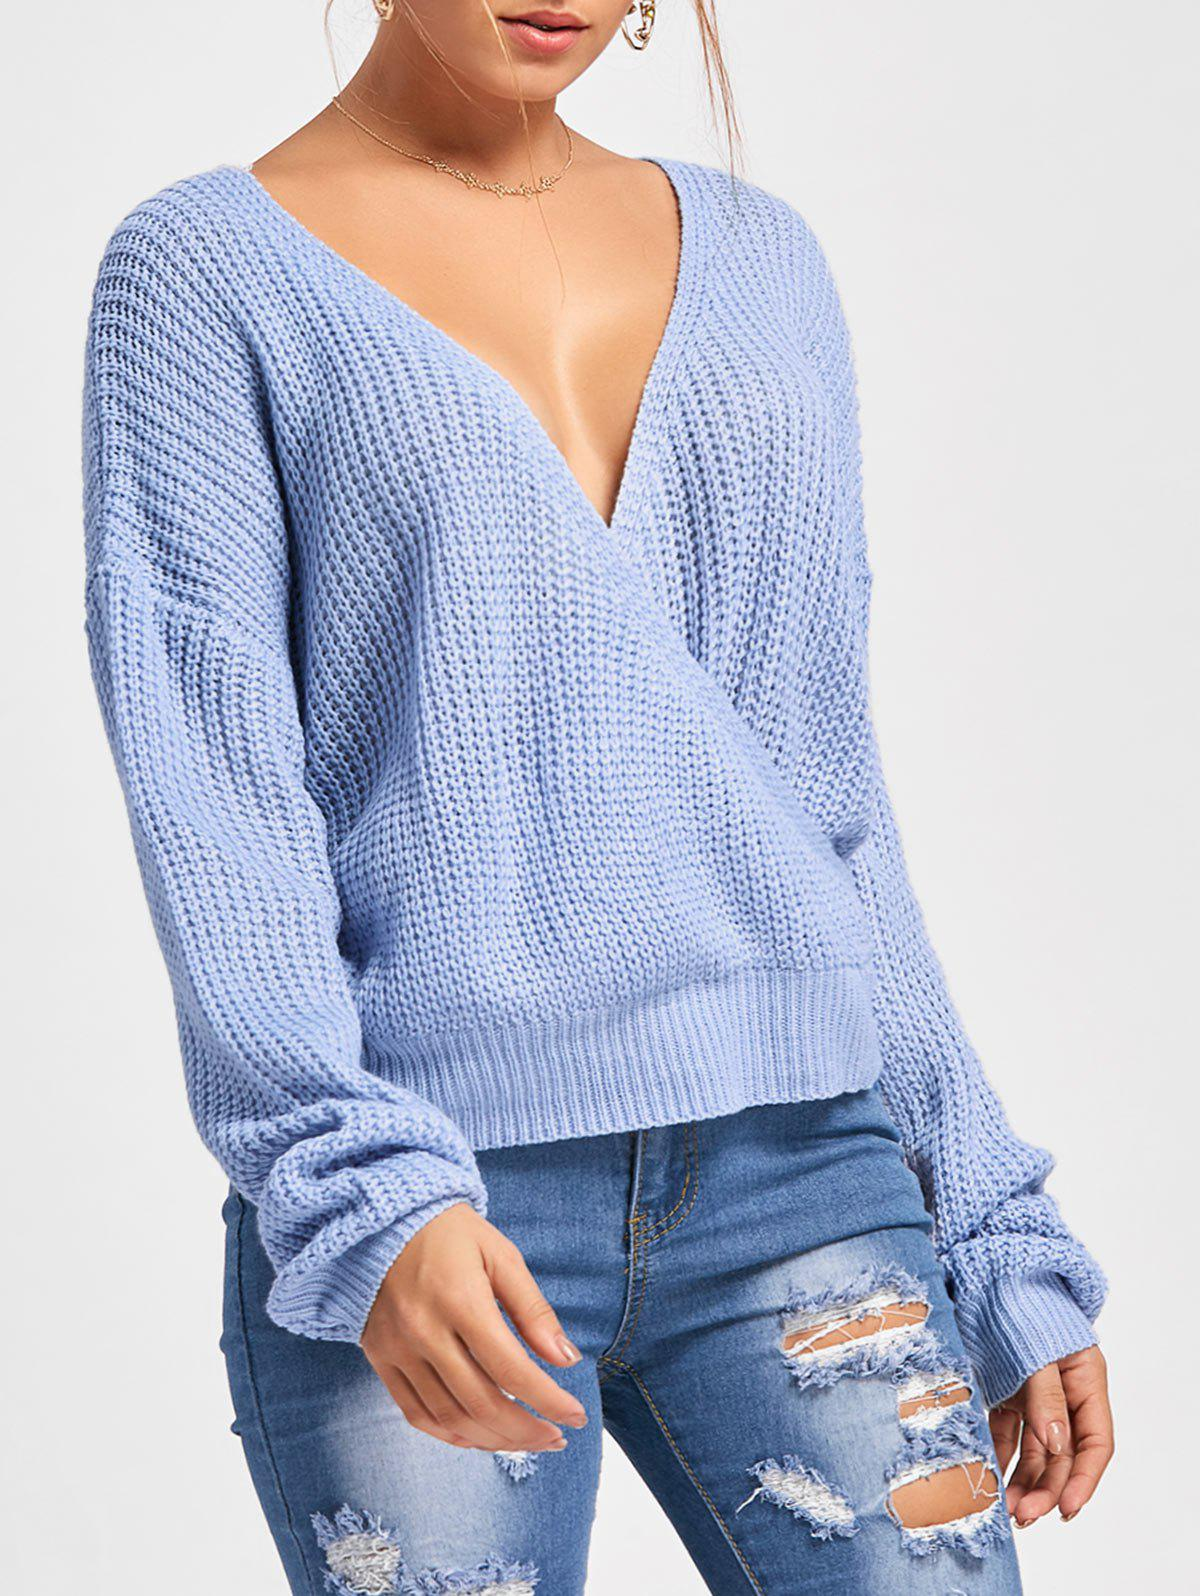 Back Cut Out Deep V Neck Oversized SweaterWOMEN<br><br>Size: M; Color: AZURE; Type: Pullovers; Material: Acrylic; Sleeve Length: Full; Collar: V-Neck; Style: Fashion; Pattern Type: Solid; Season: Fall,Spring; Weight: 0.3700kg; Package Contents: 1 x Sweater;